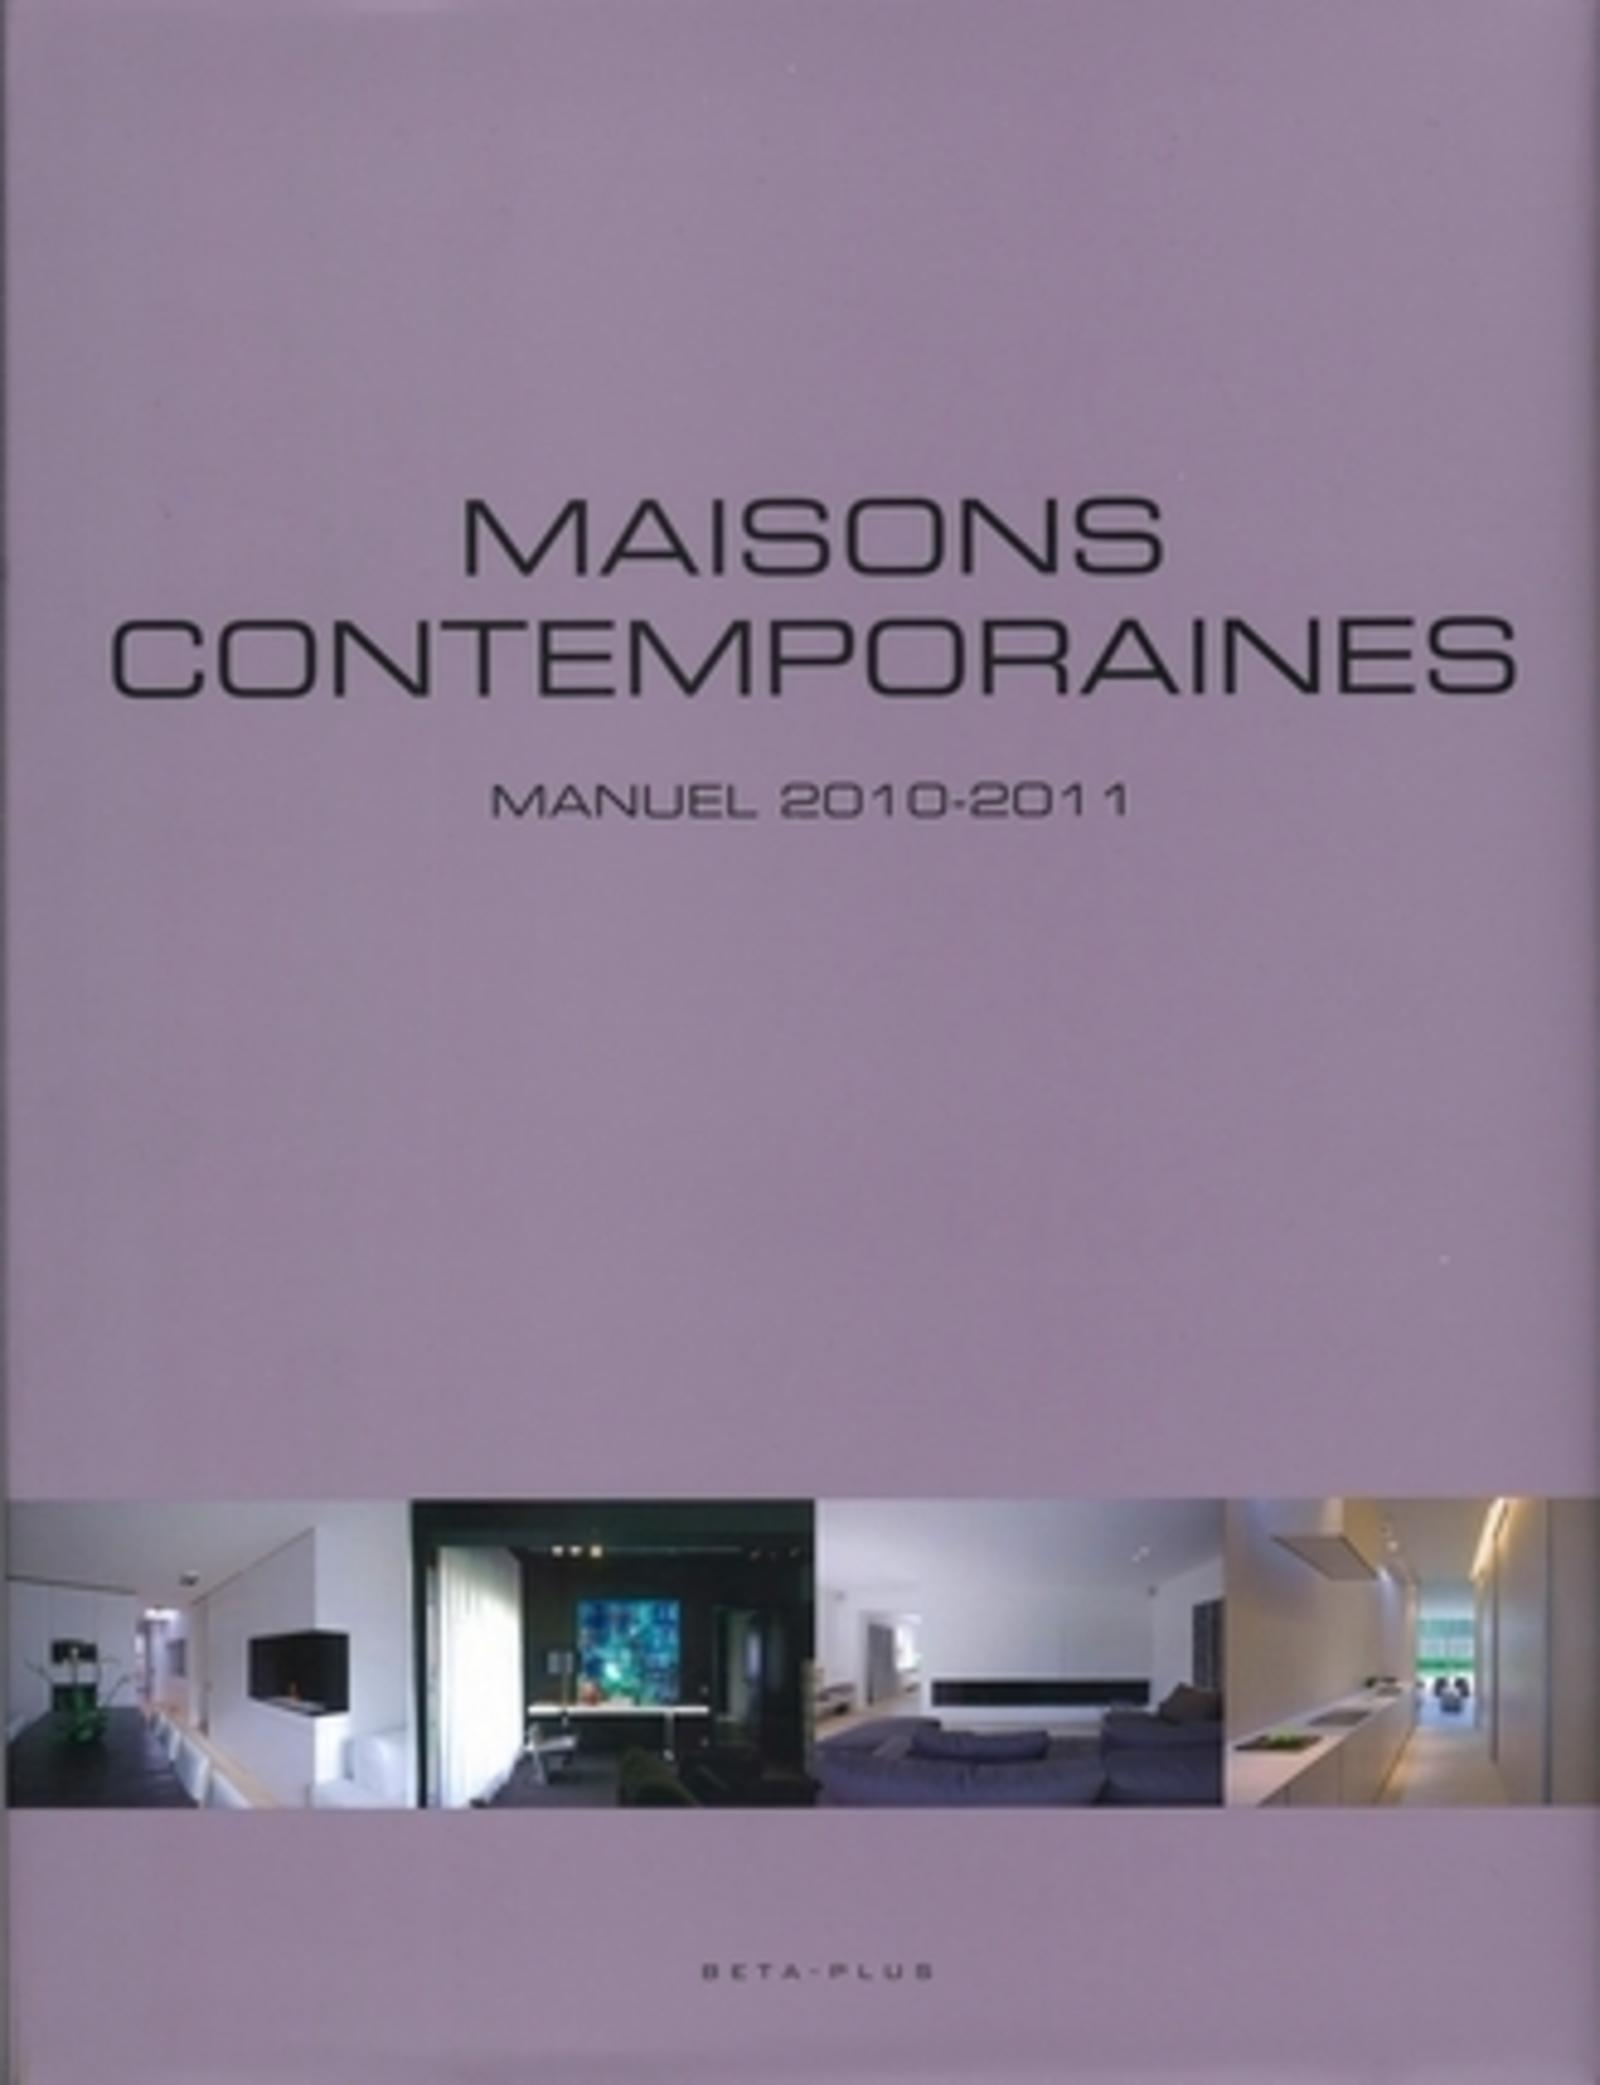 MAISONS CONTEMPORAINES. MANUEL 2010-2011 - OUVRAGE MULTILINGUE